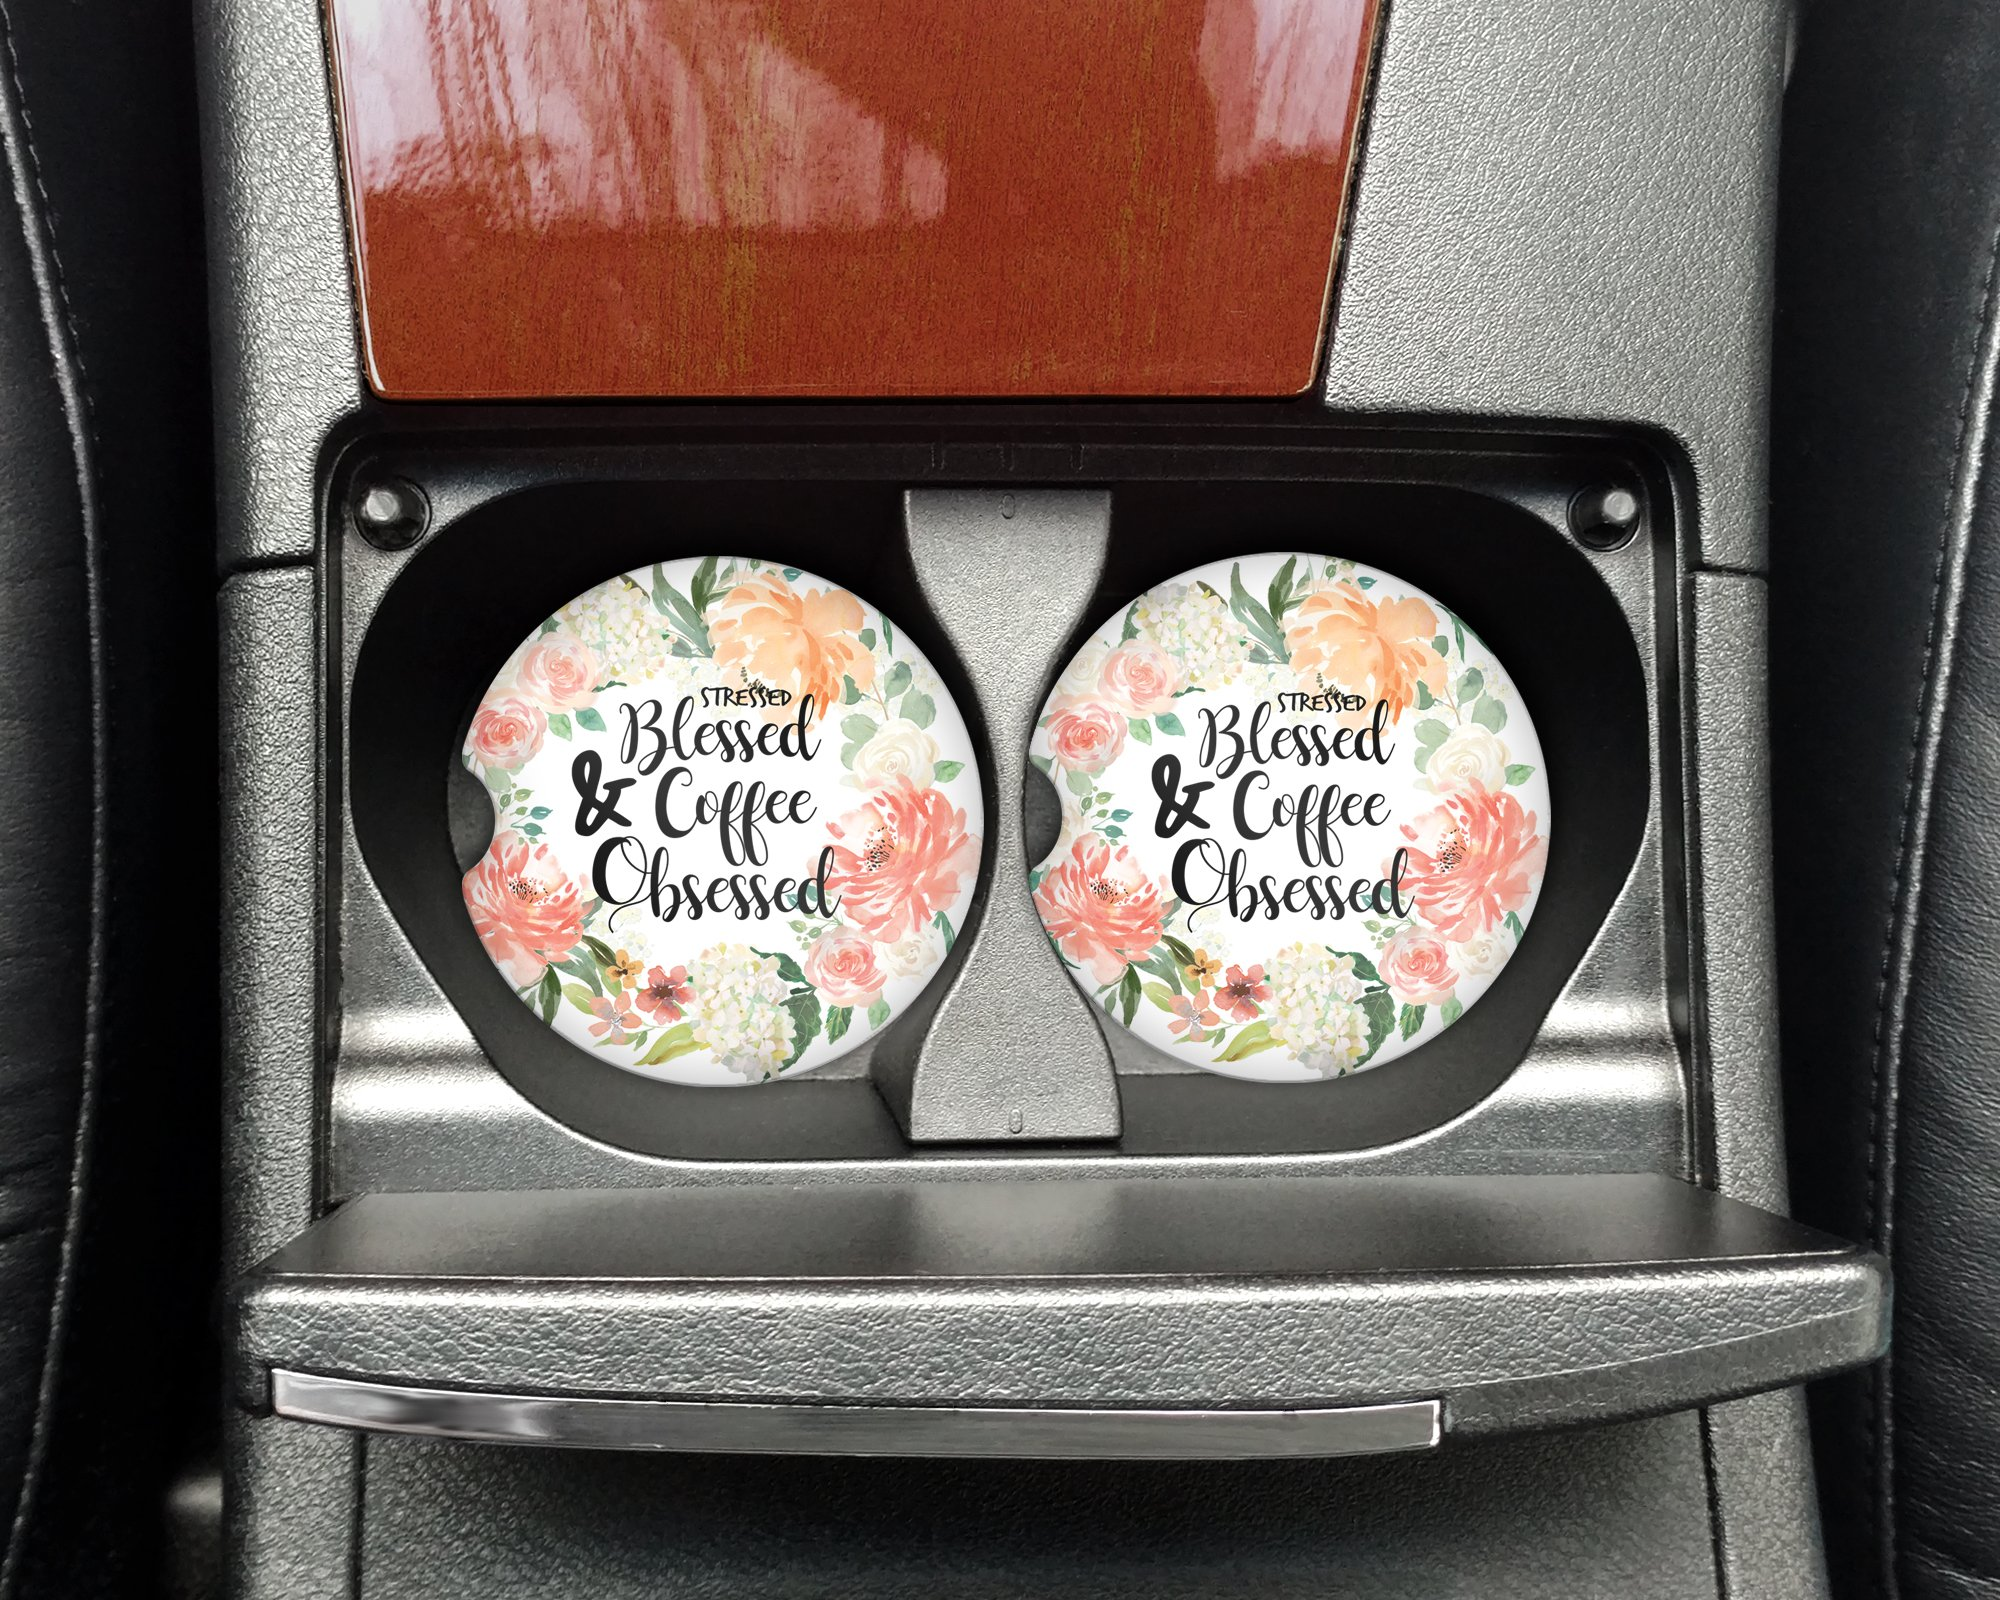 Stressed Blessed and Coffee Obsessed - Car coasters - Sandstone auto cup holder coasters Christian motivational - Gifts for women